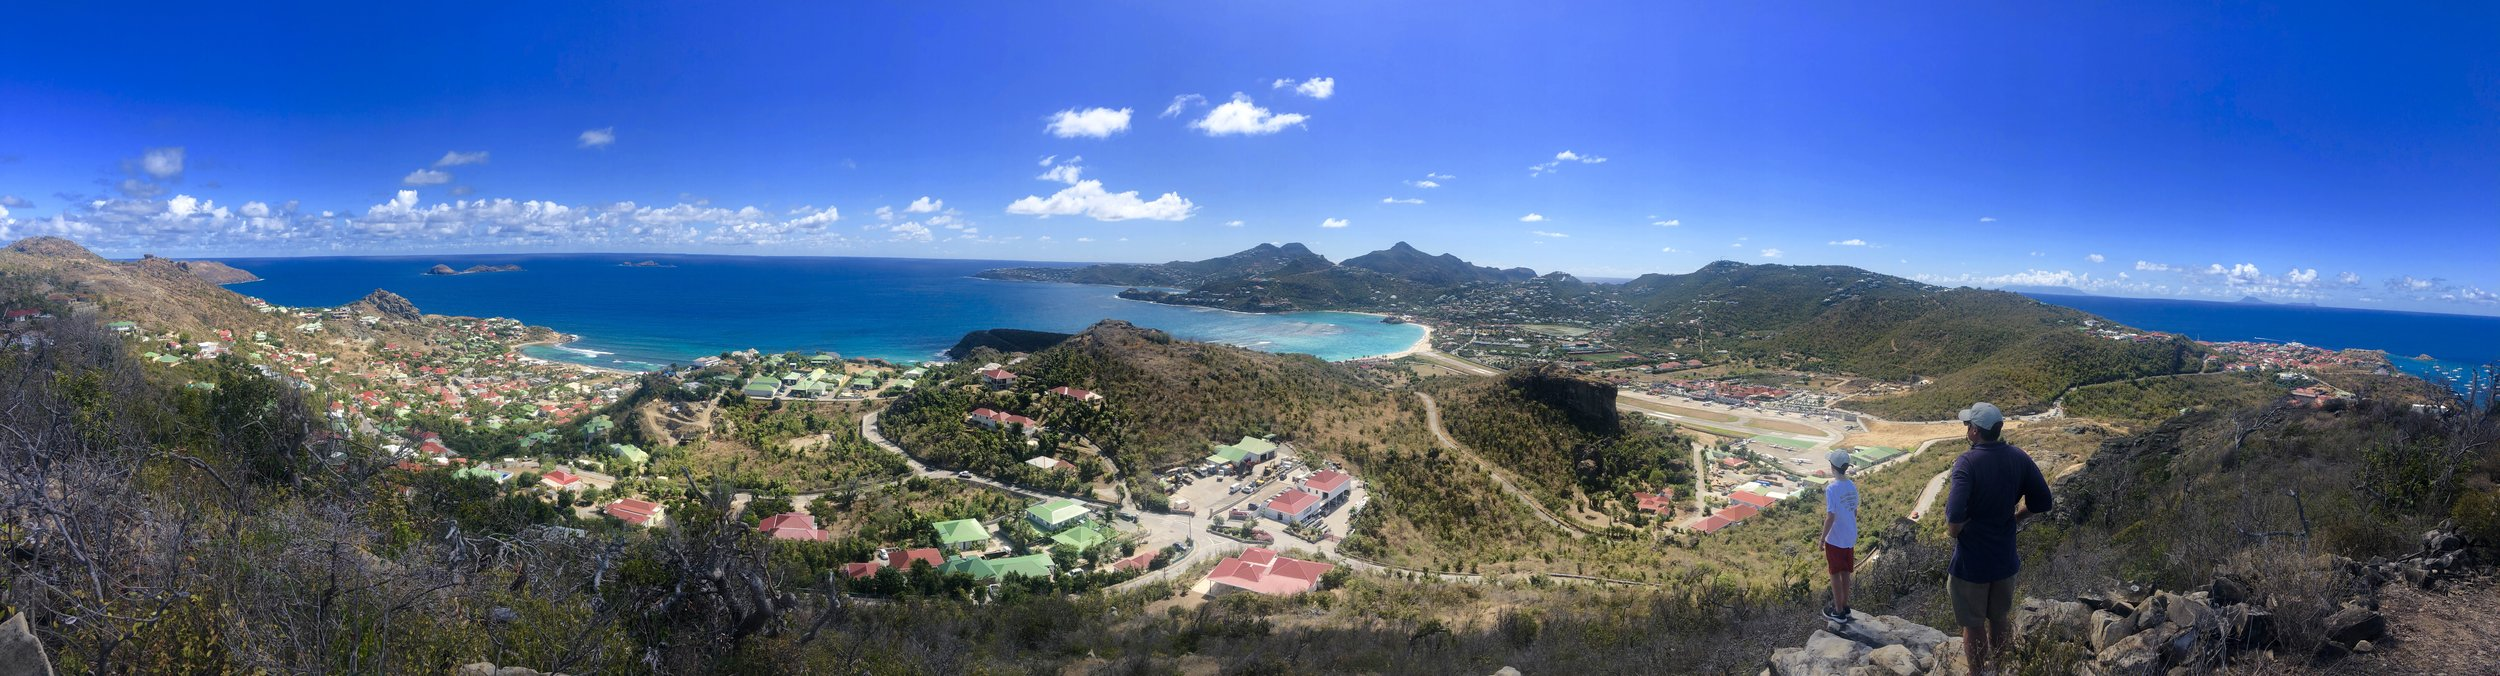 st barth overlook help st barth